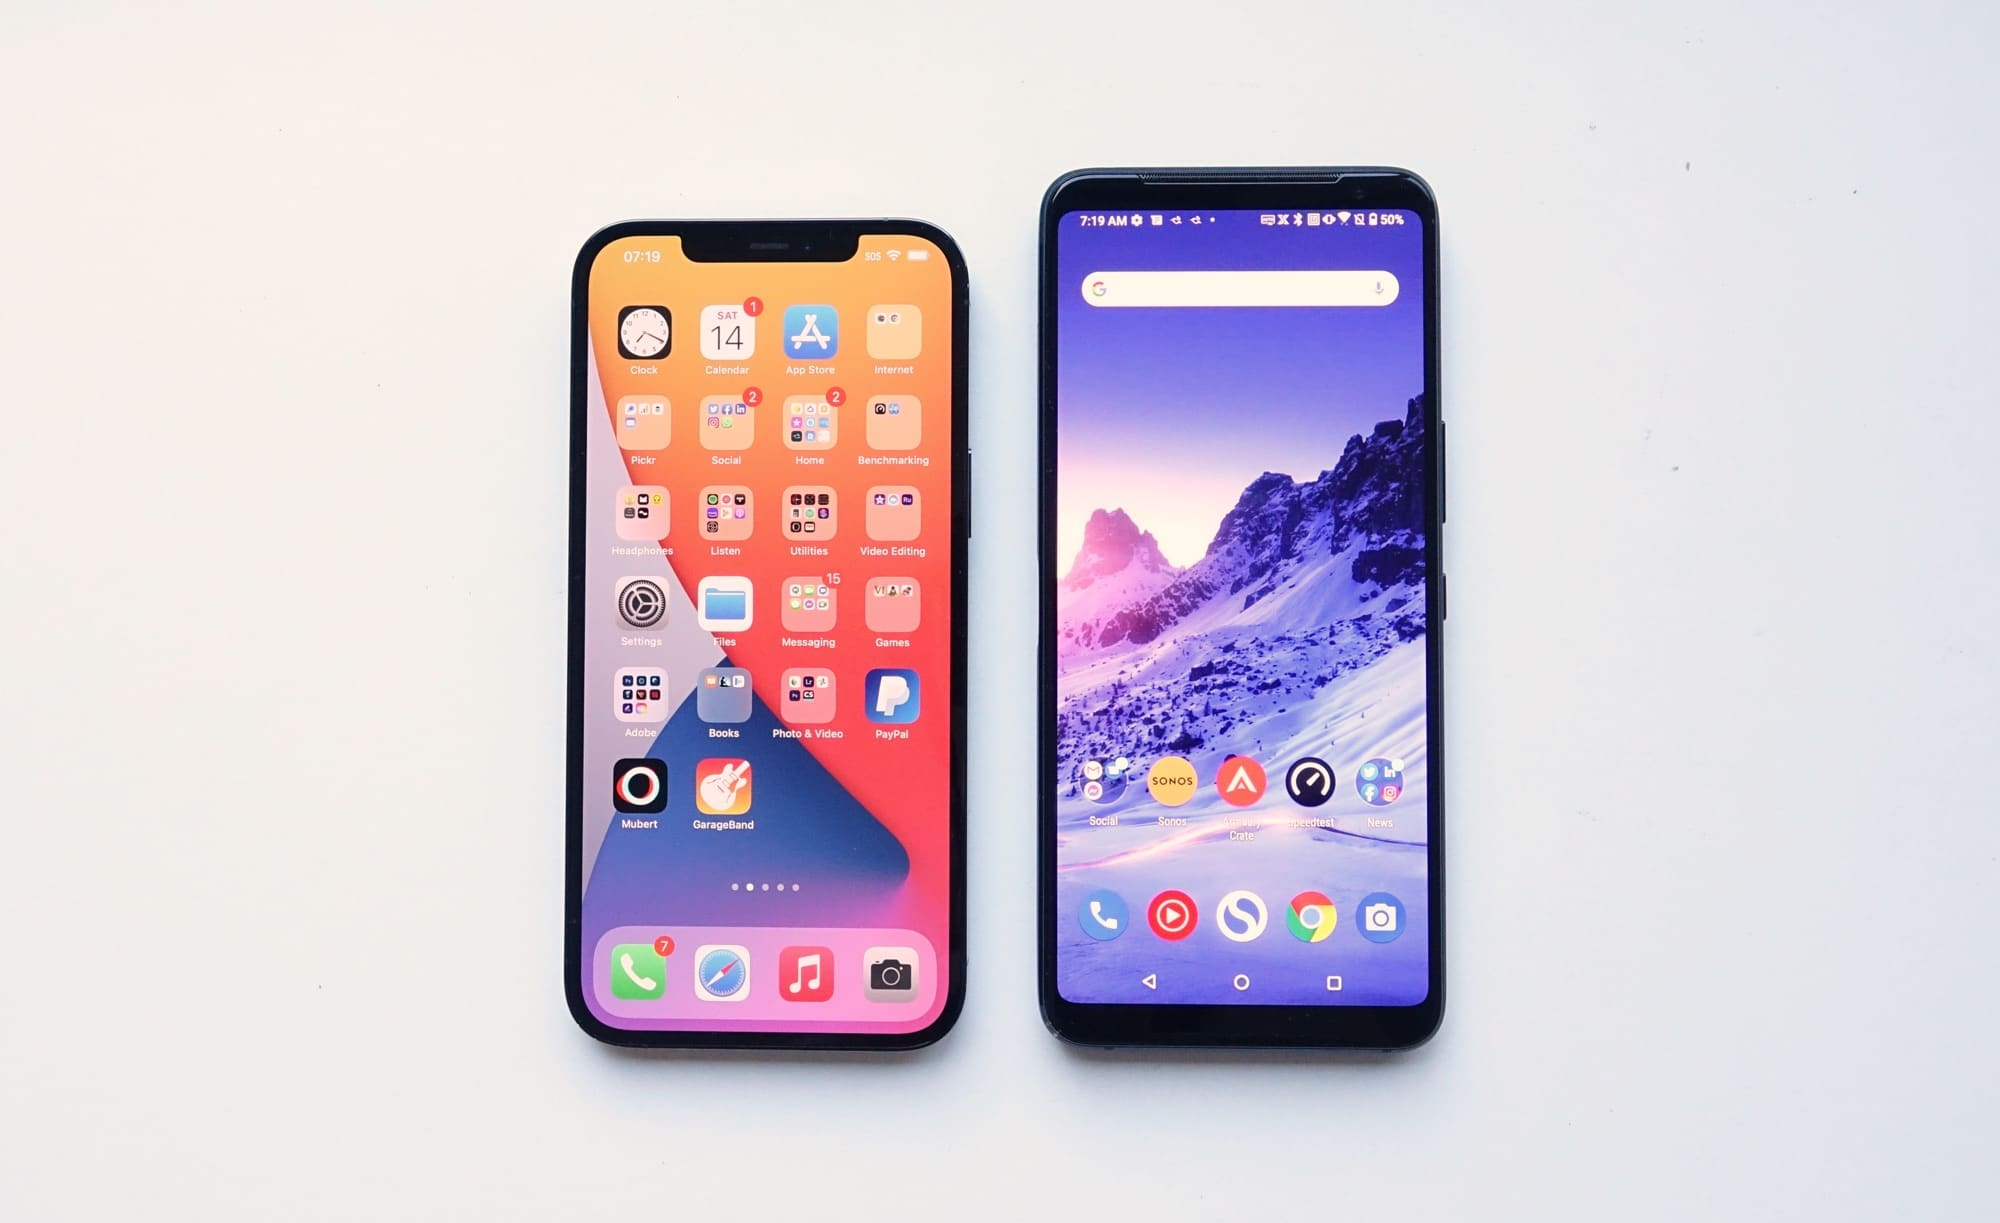 Big phones compared: Apple iPhone 12 Pro Max (left) vs Asus ROG Phone 3 (right)